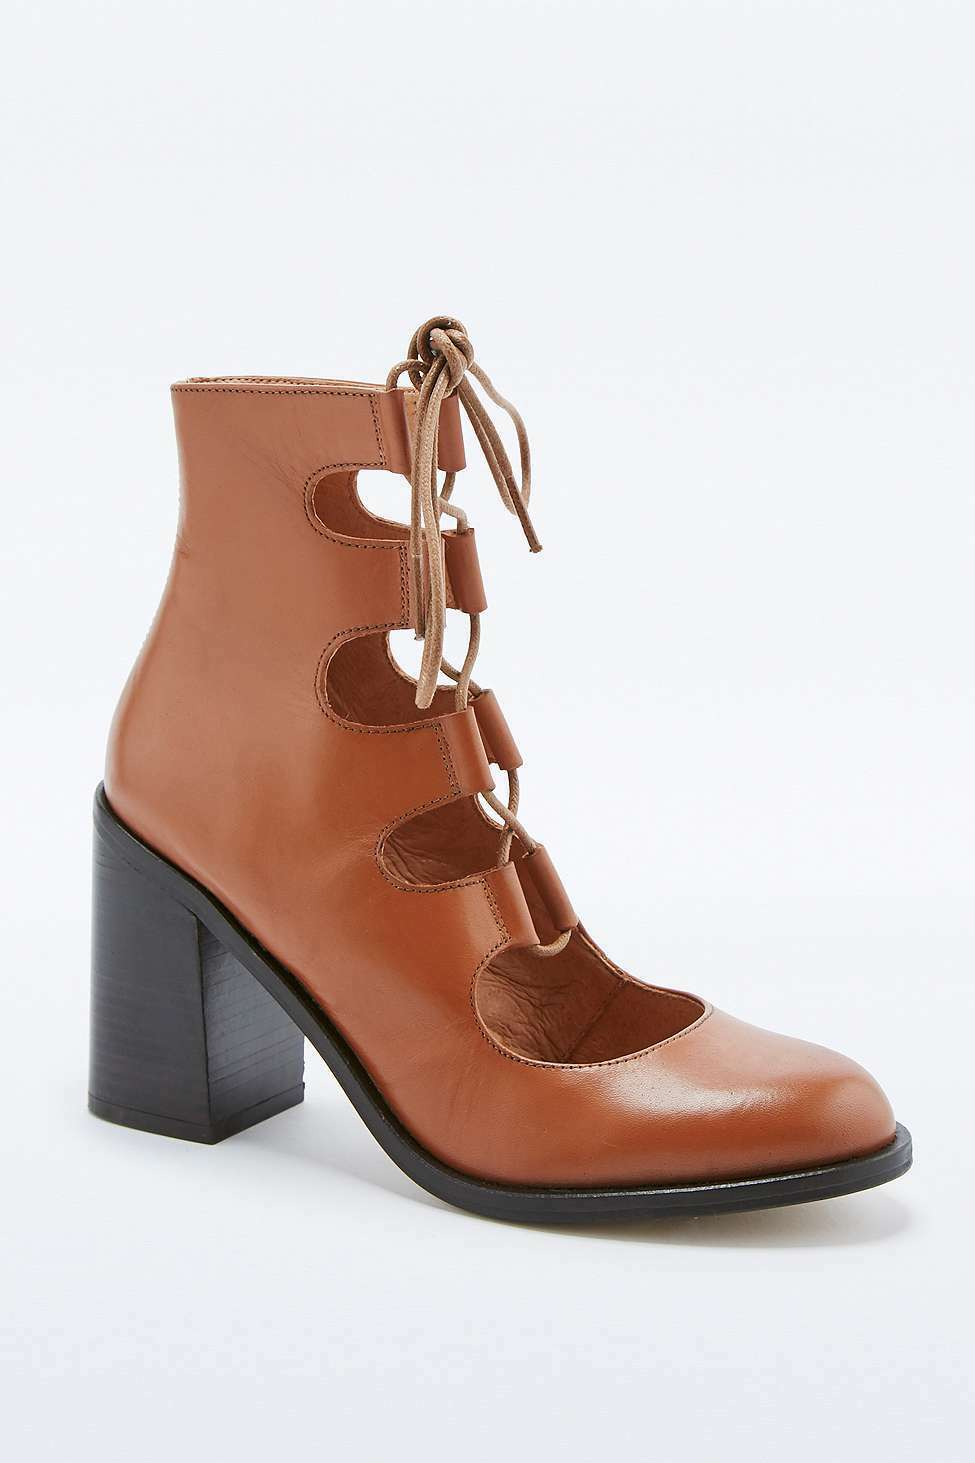 Urban Outfitters Deena & Ozzy Krista Tan Lace-Up Flare Heels - Brown - UK 7